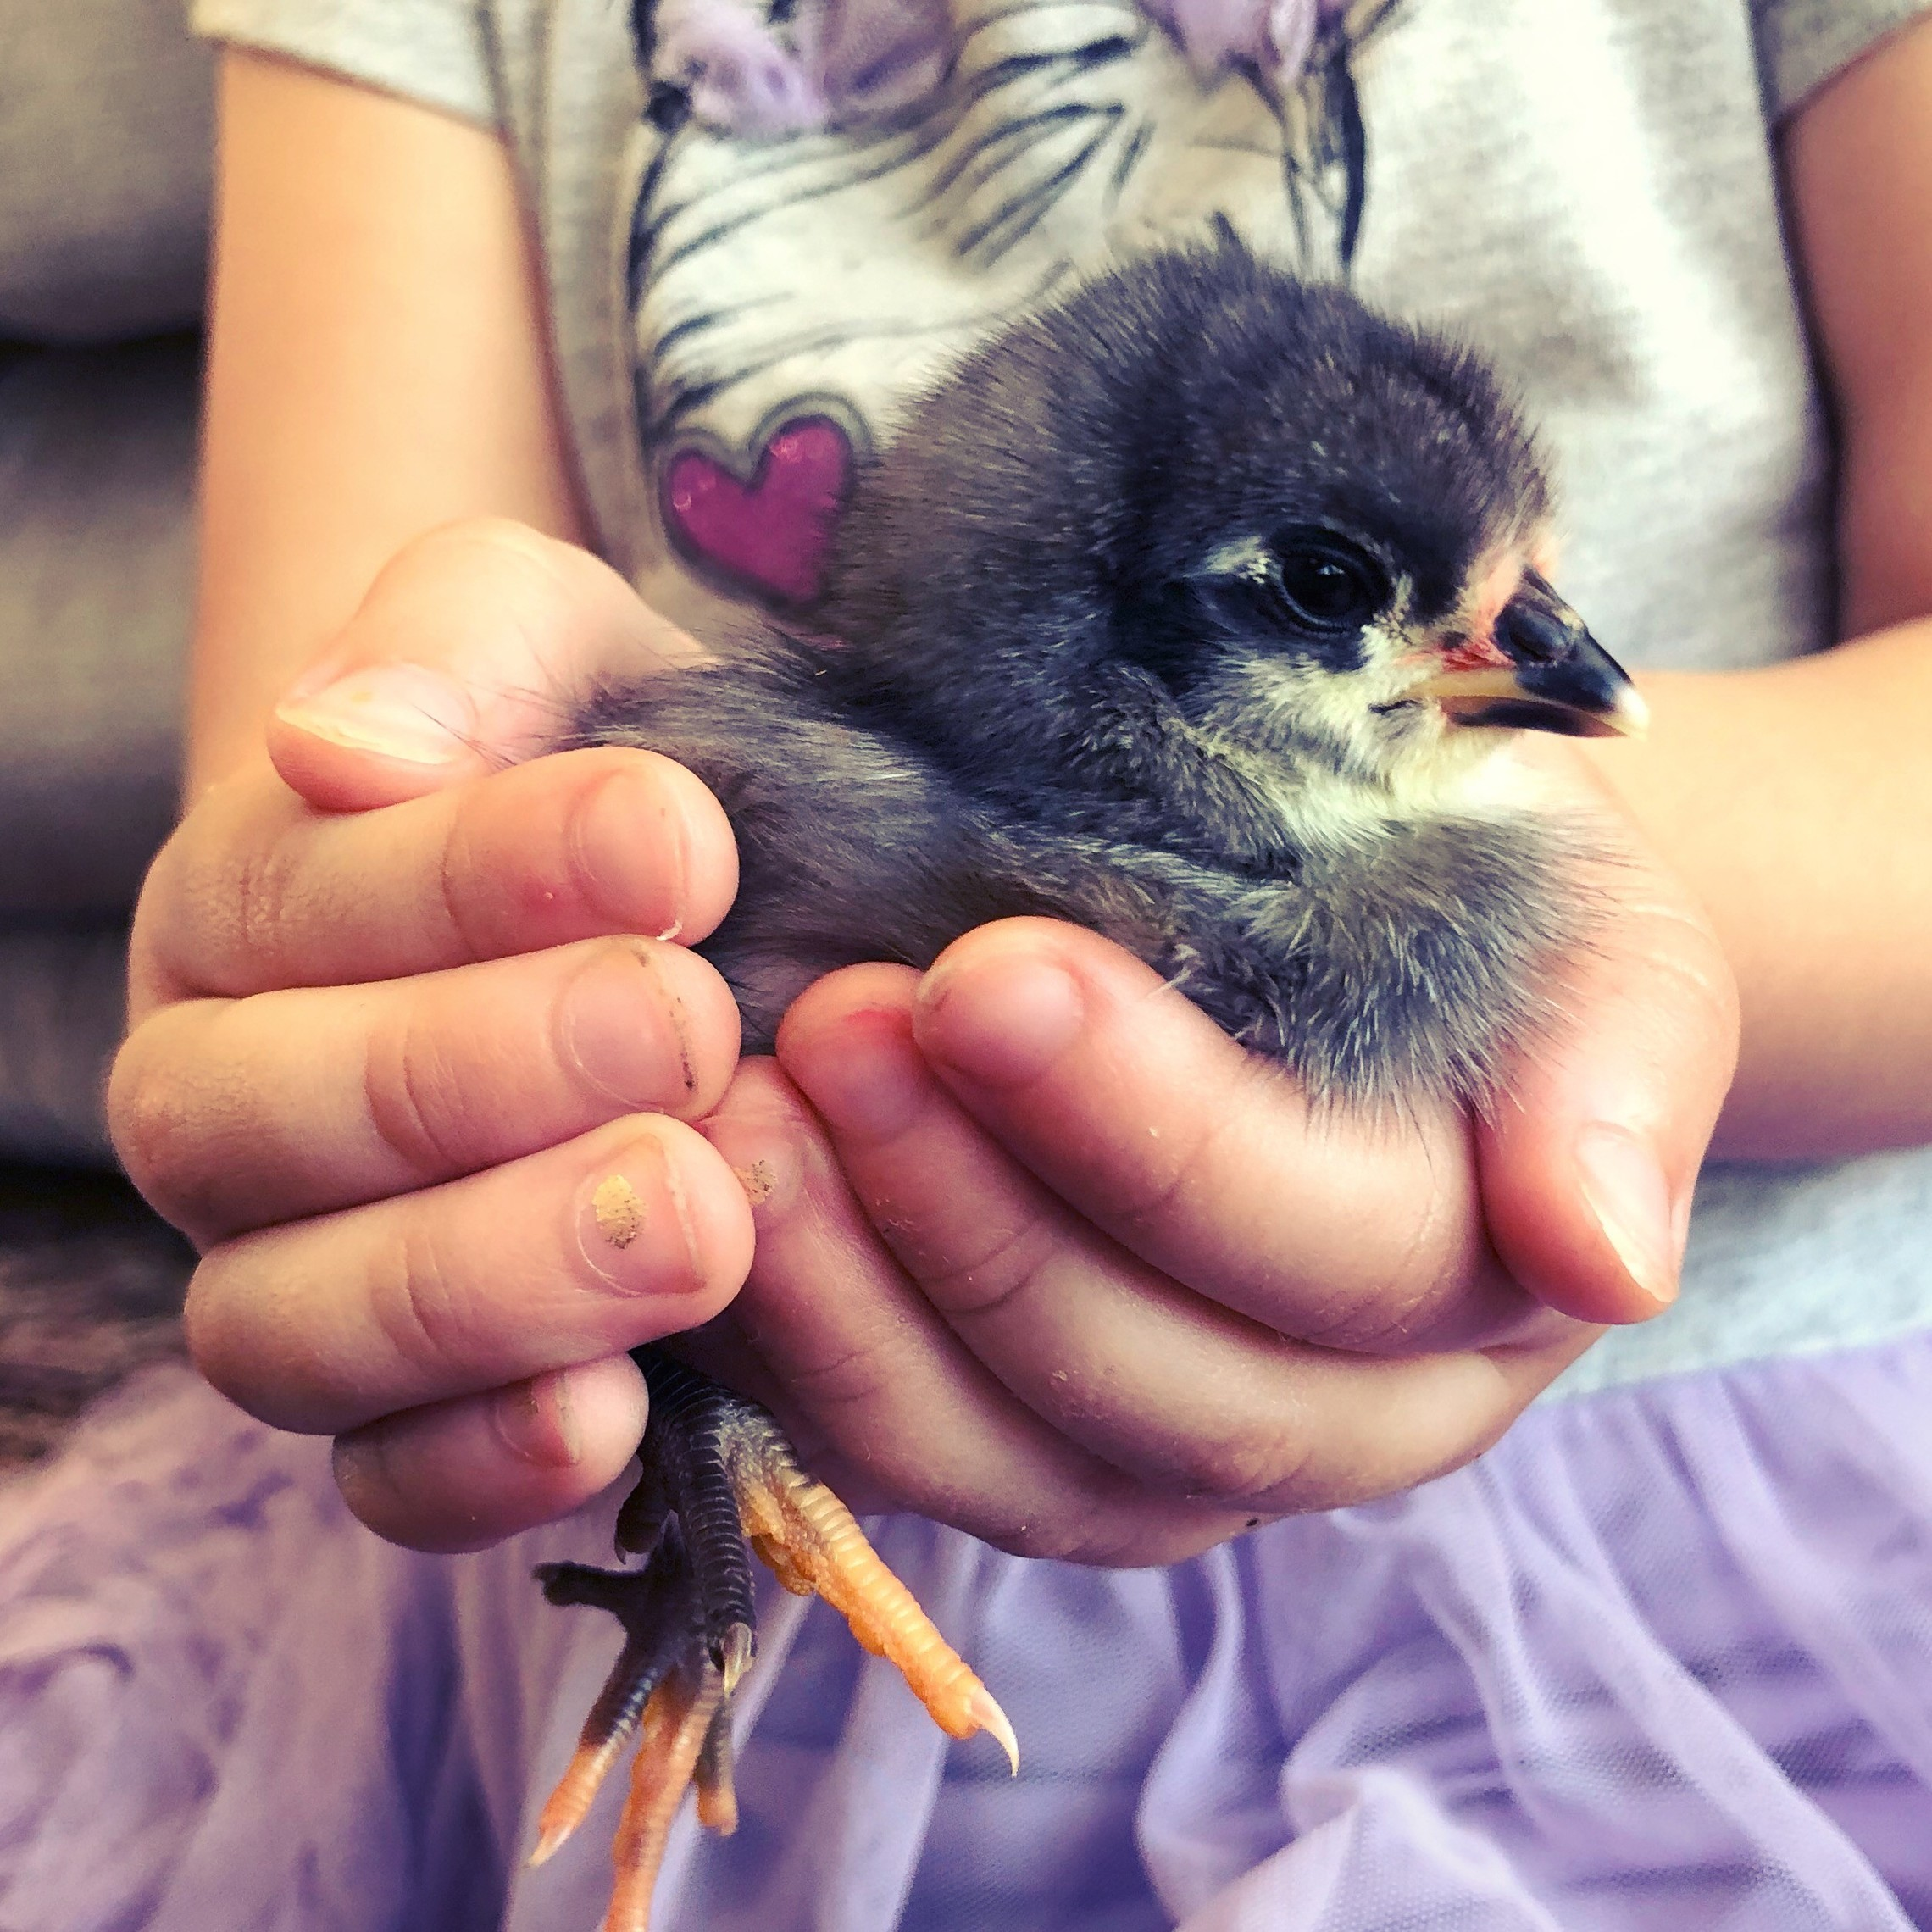 Gemma holding baby chick for rent